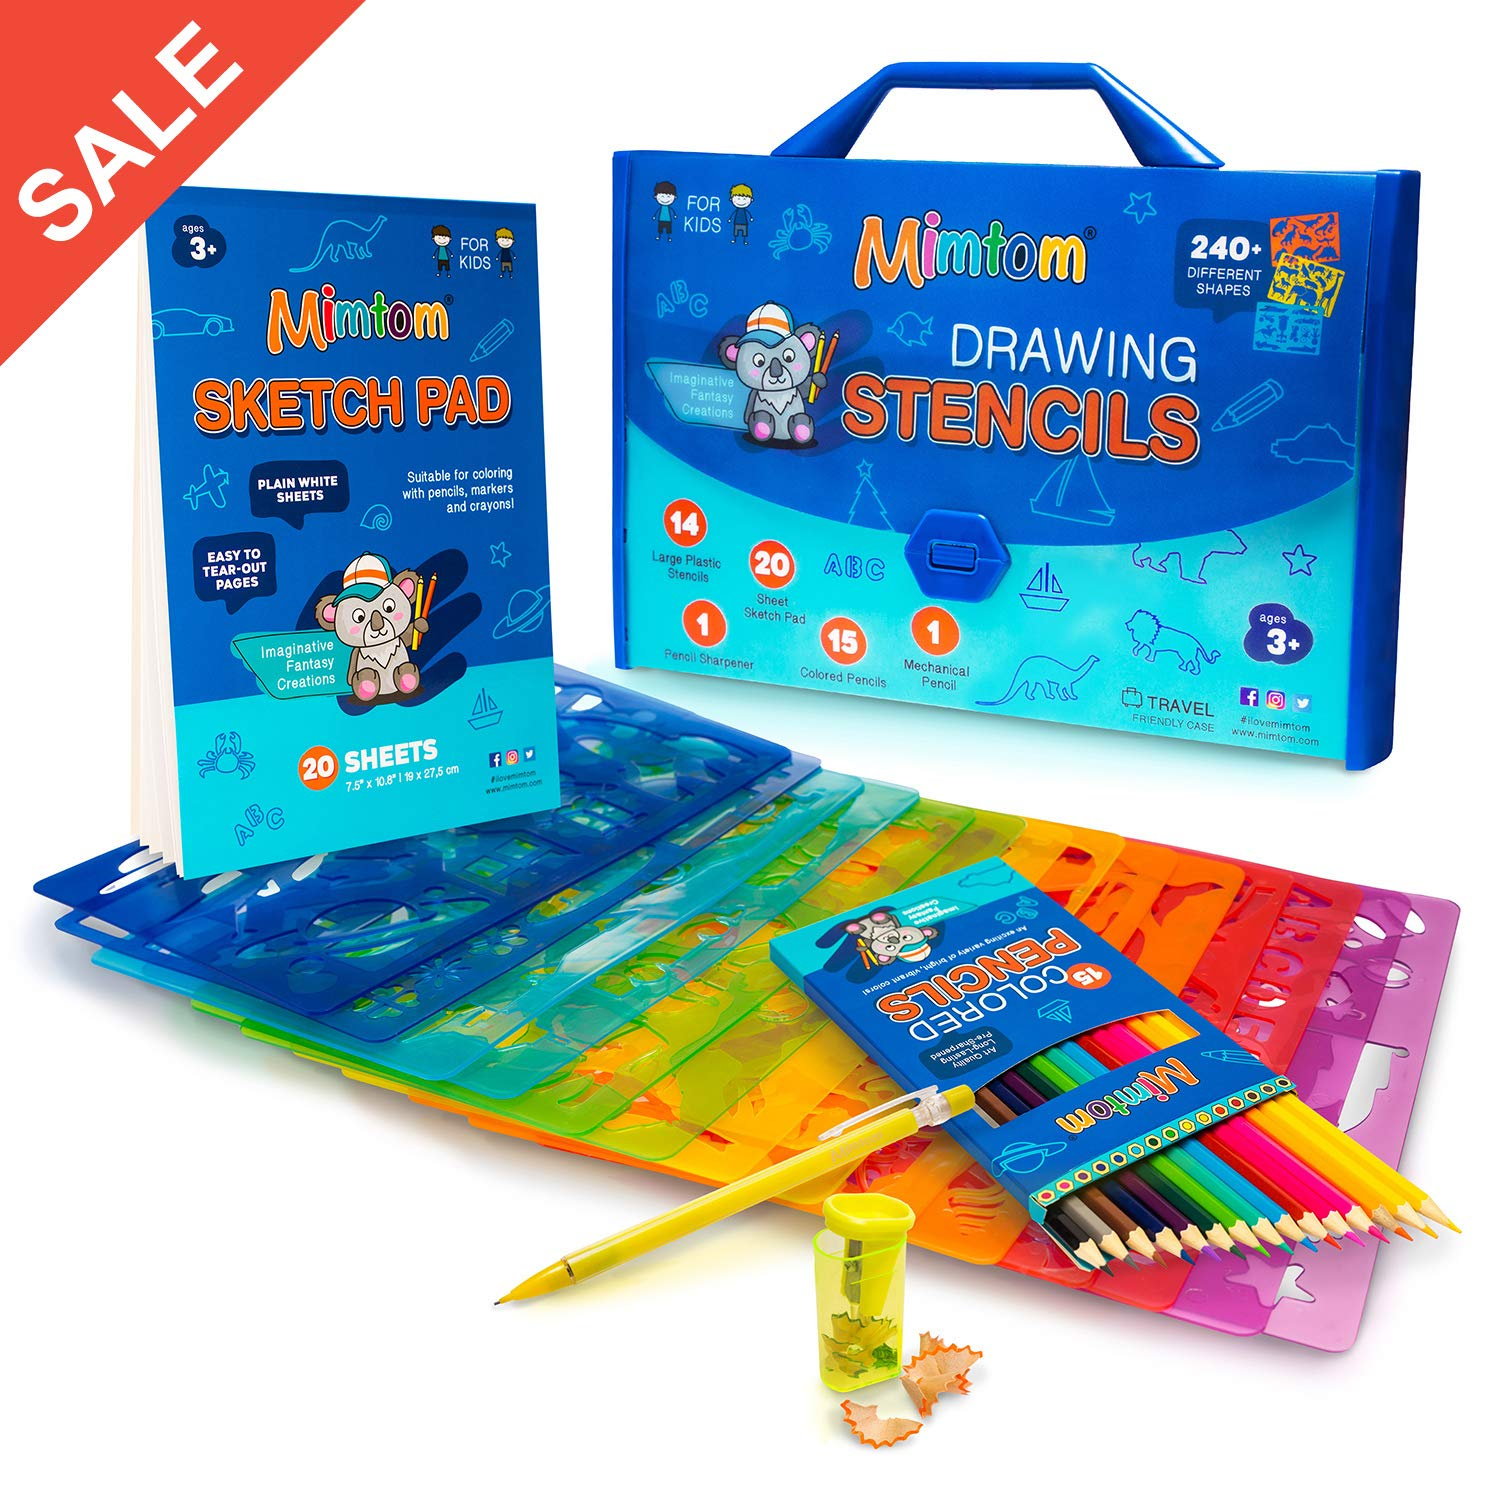 Mimtom Drawing Stencils Set For Kids And Boys 51 Arts And Crafts Stencil Kits With Over 240 Creative Shapes To Unleash Your Child S World Of